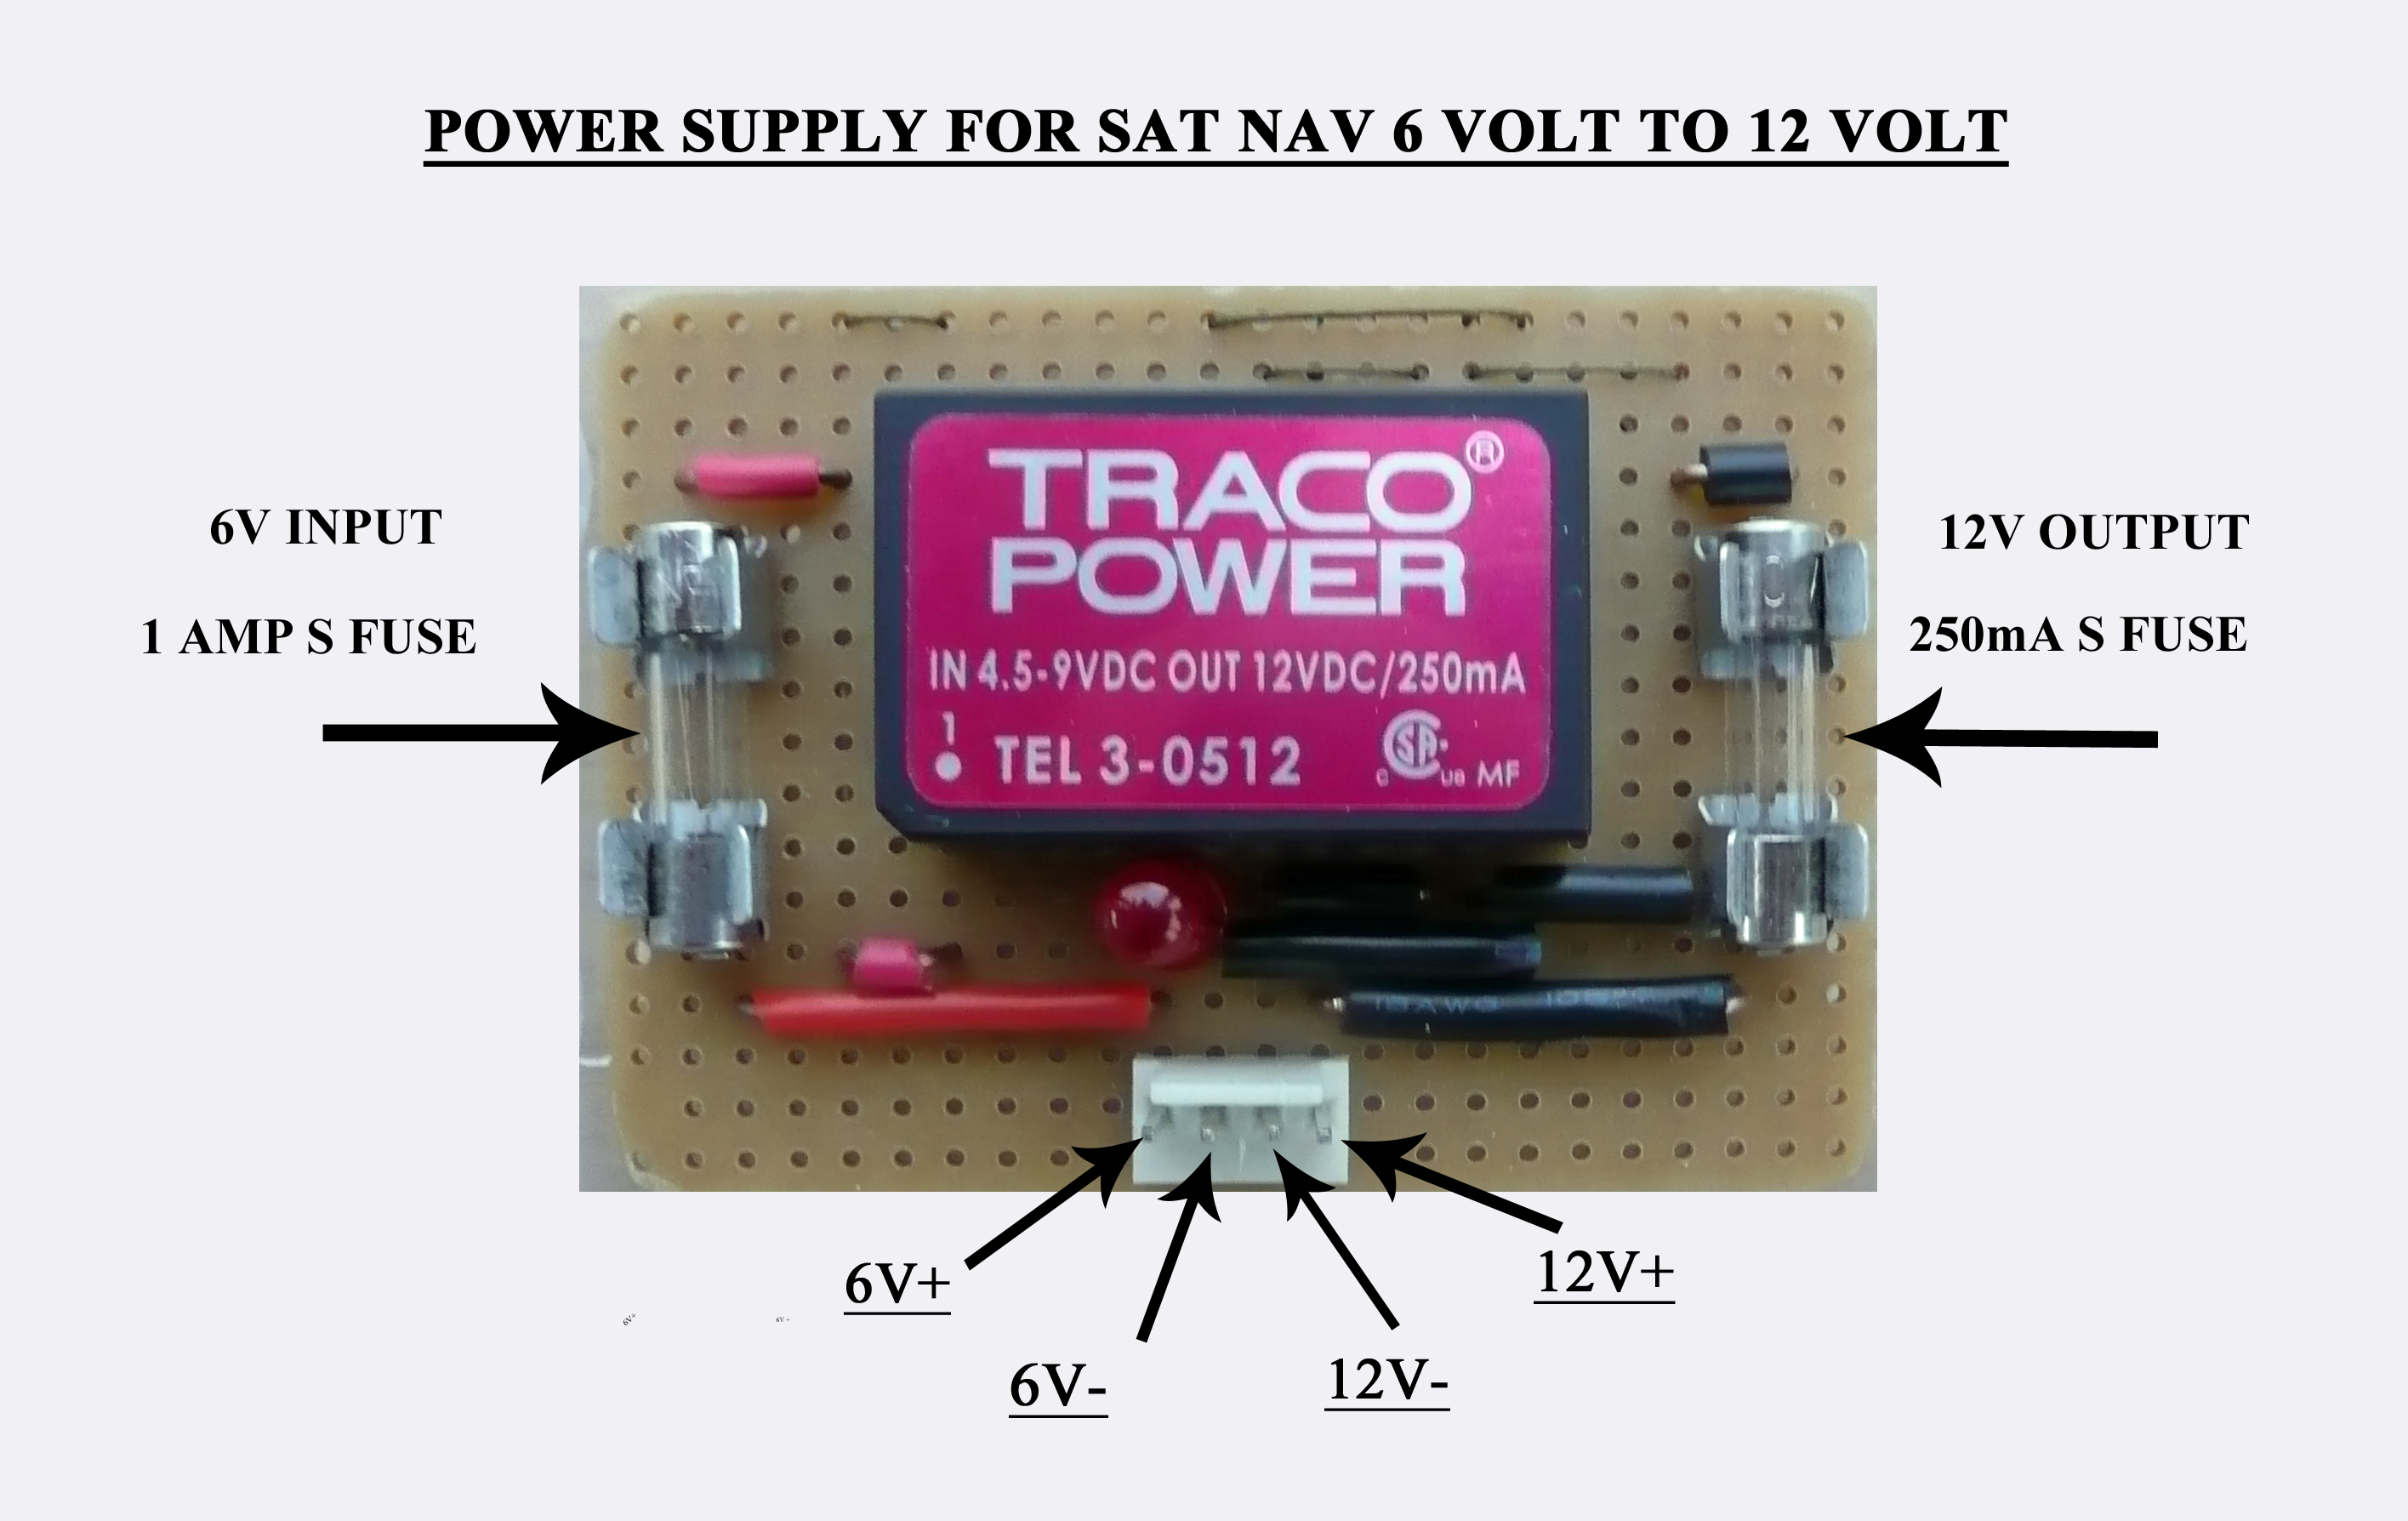 6 VOLT TO 12 VOLT CONVERTER FOR SAT NAV ONLY | BBM69